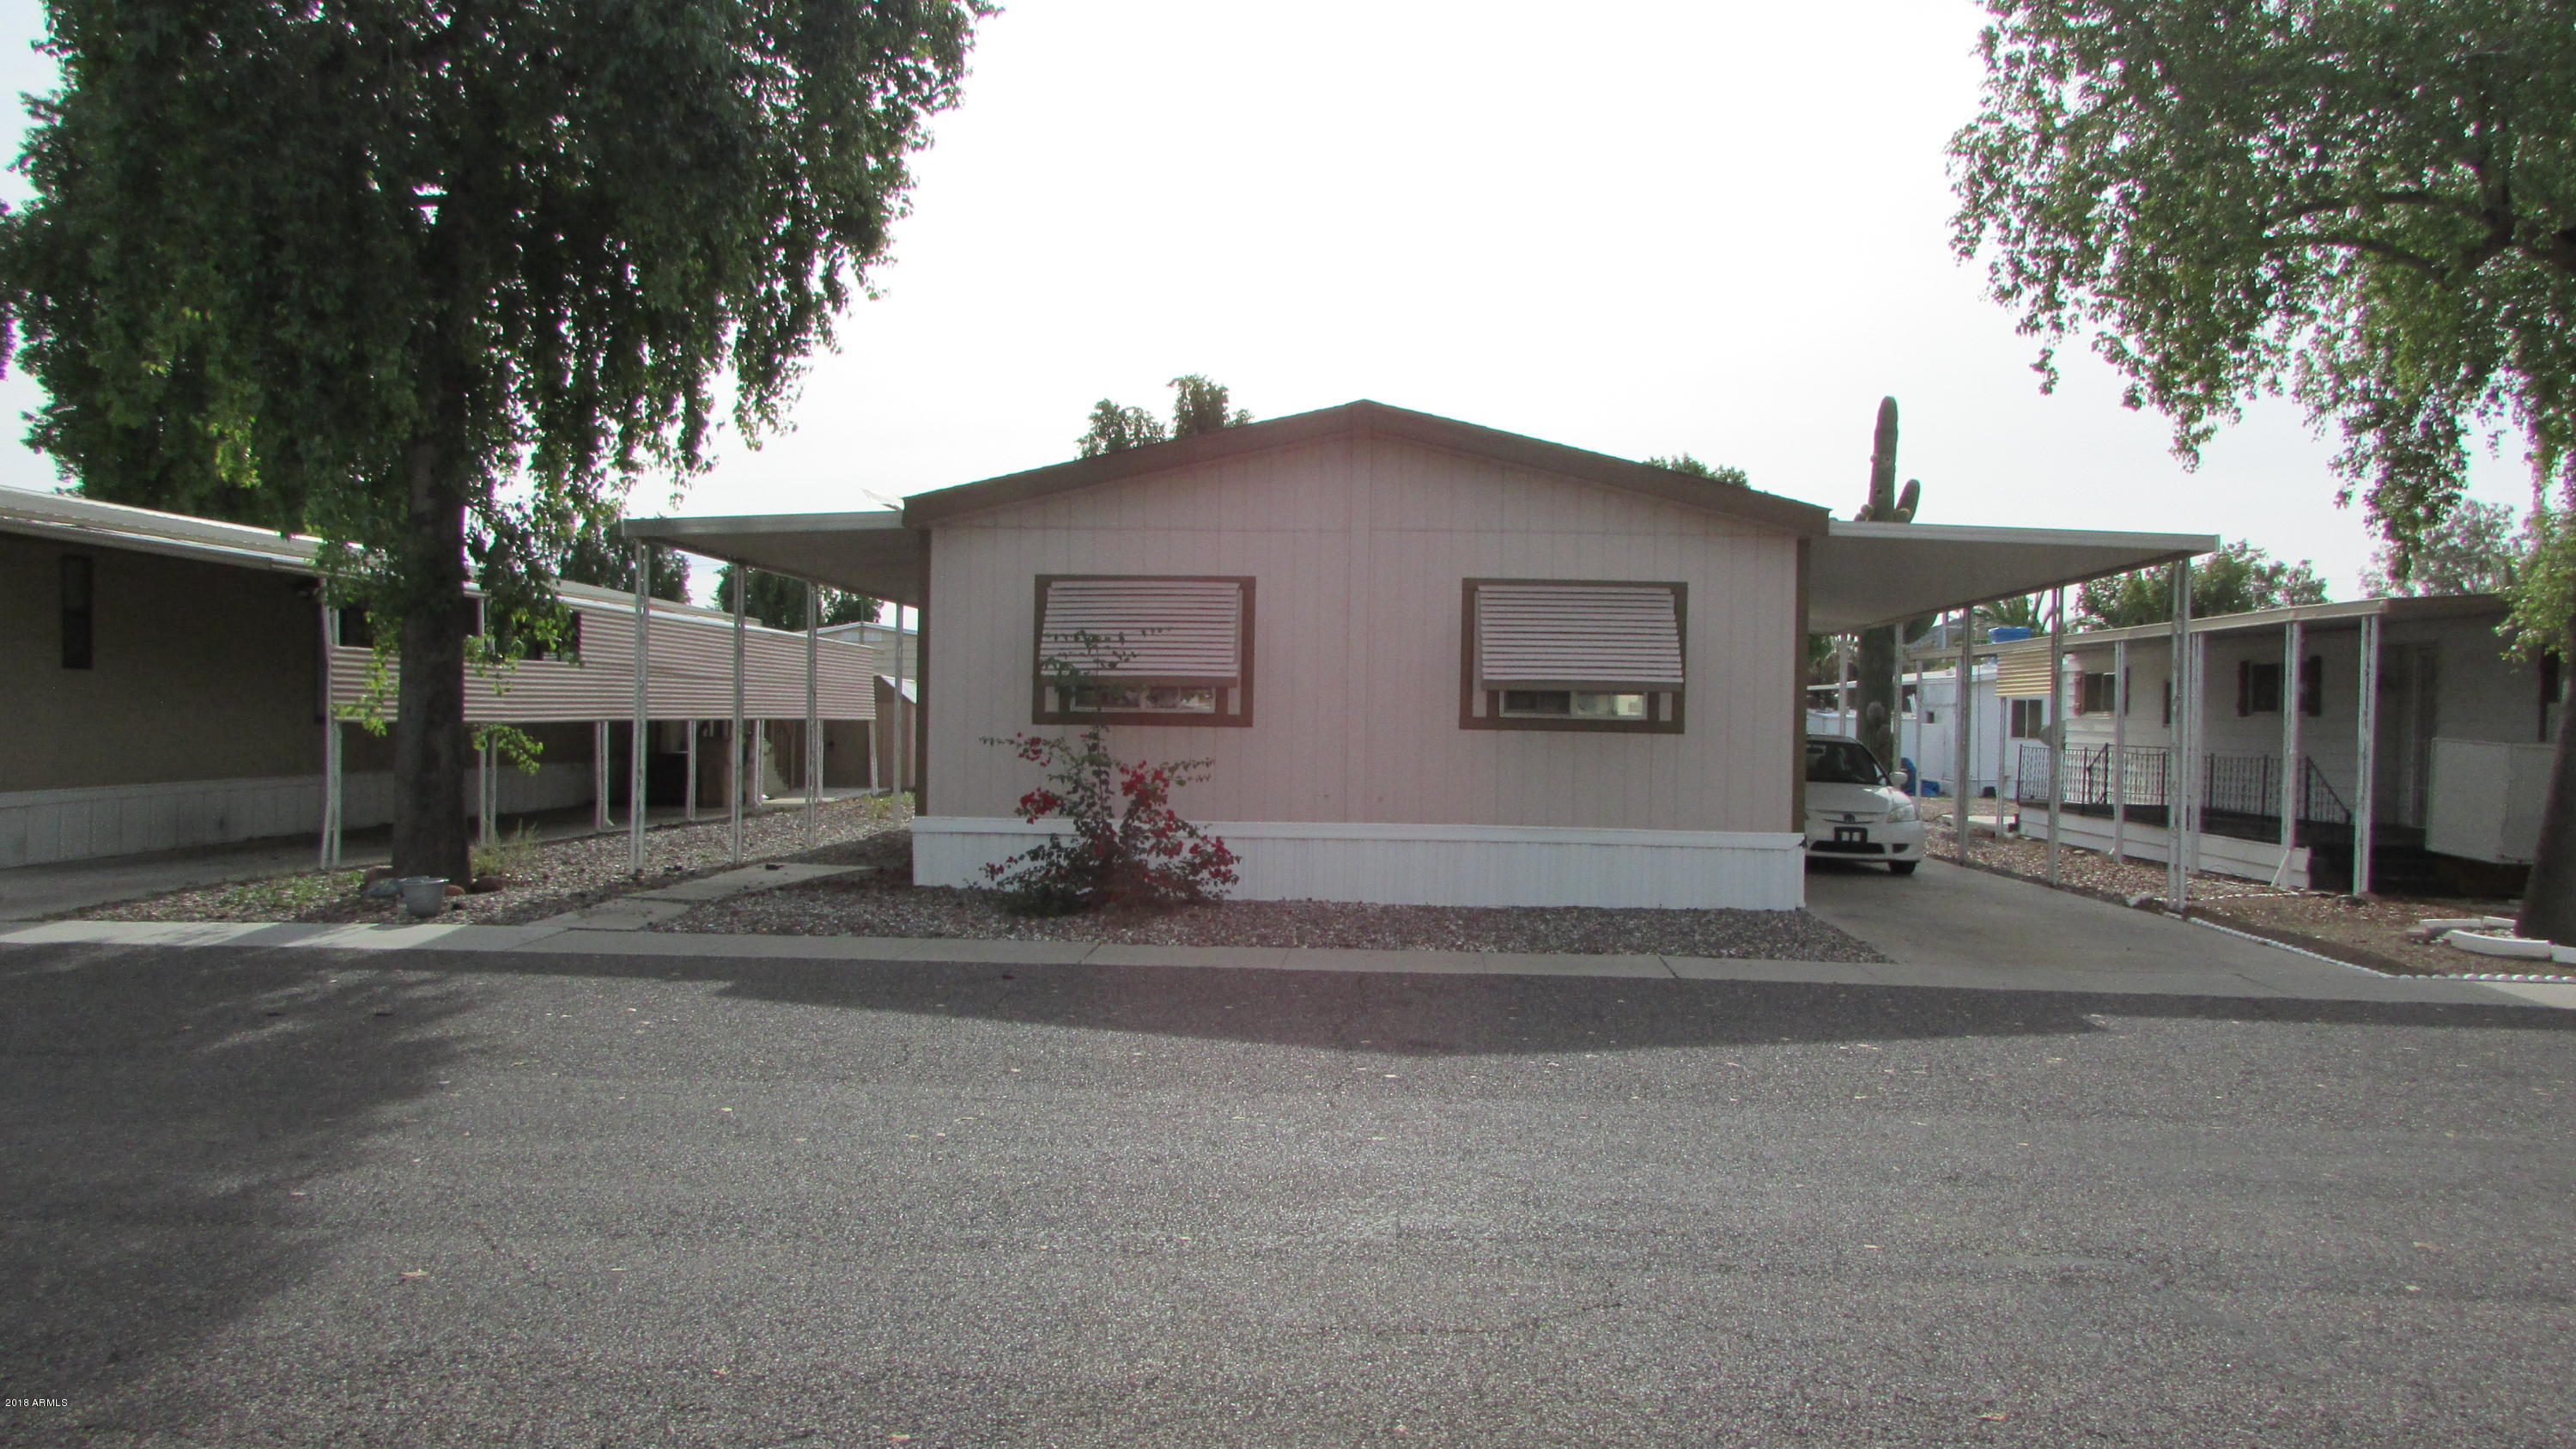 MLS 5856064 16225 N 29th Street Unit 3, Phoenix, AZ 85032 Phoenix AZ Affordable